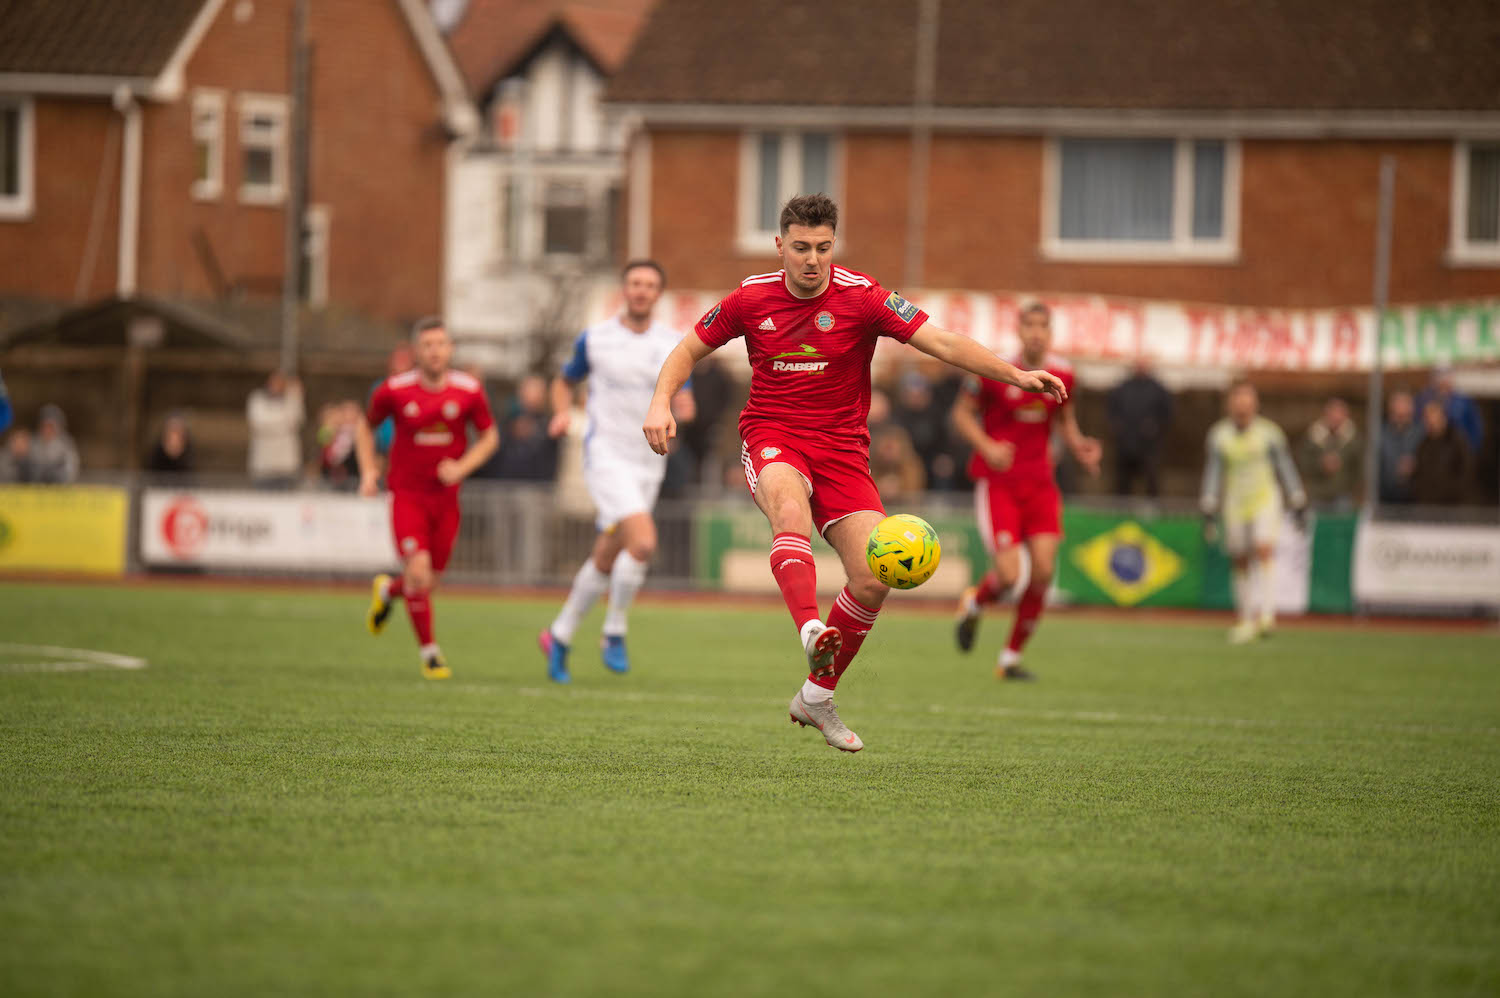 Read the full article - Reds host point-to-prove Enfield at Woodside